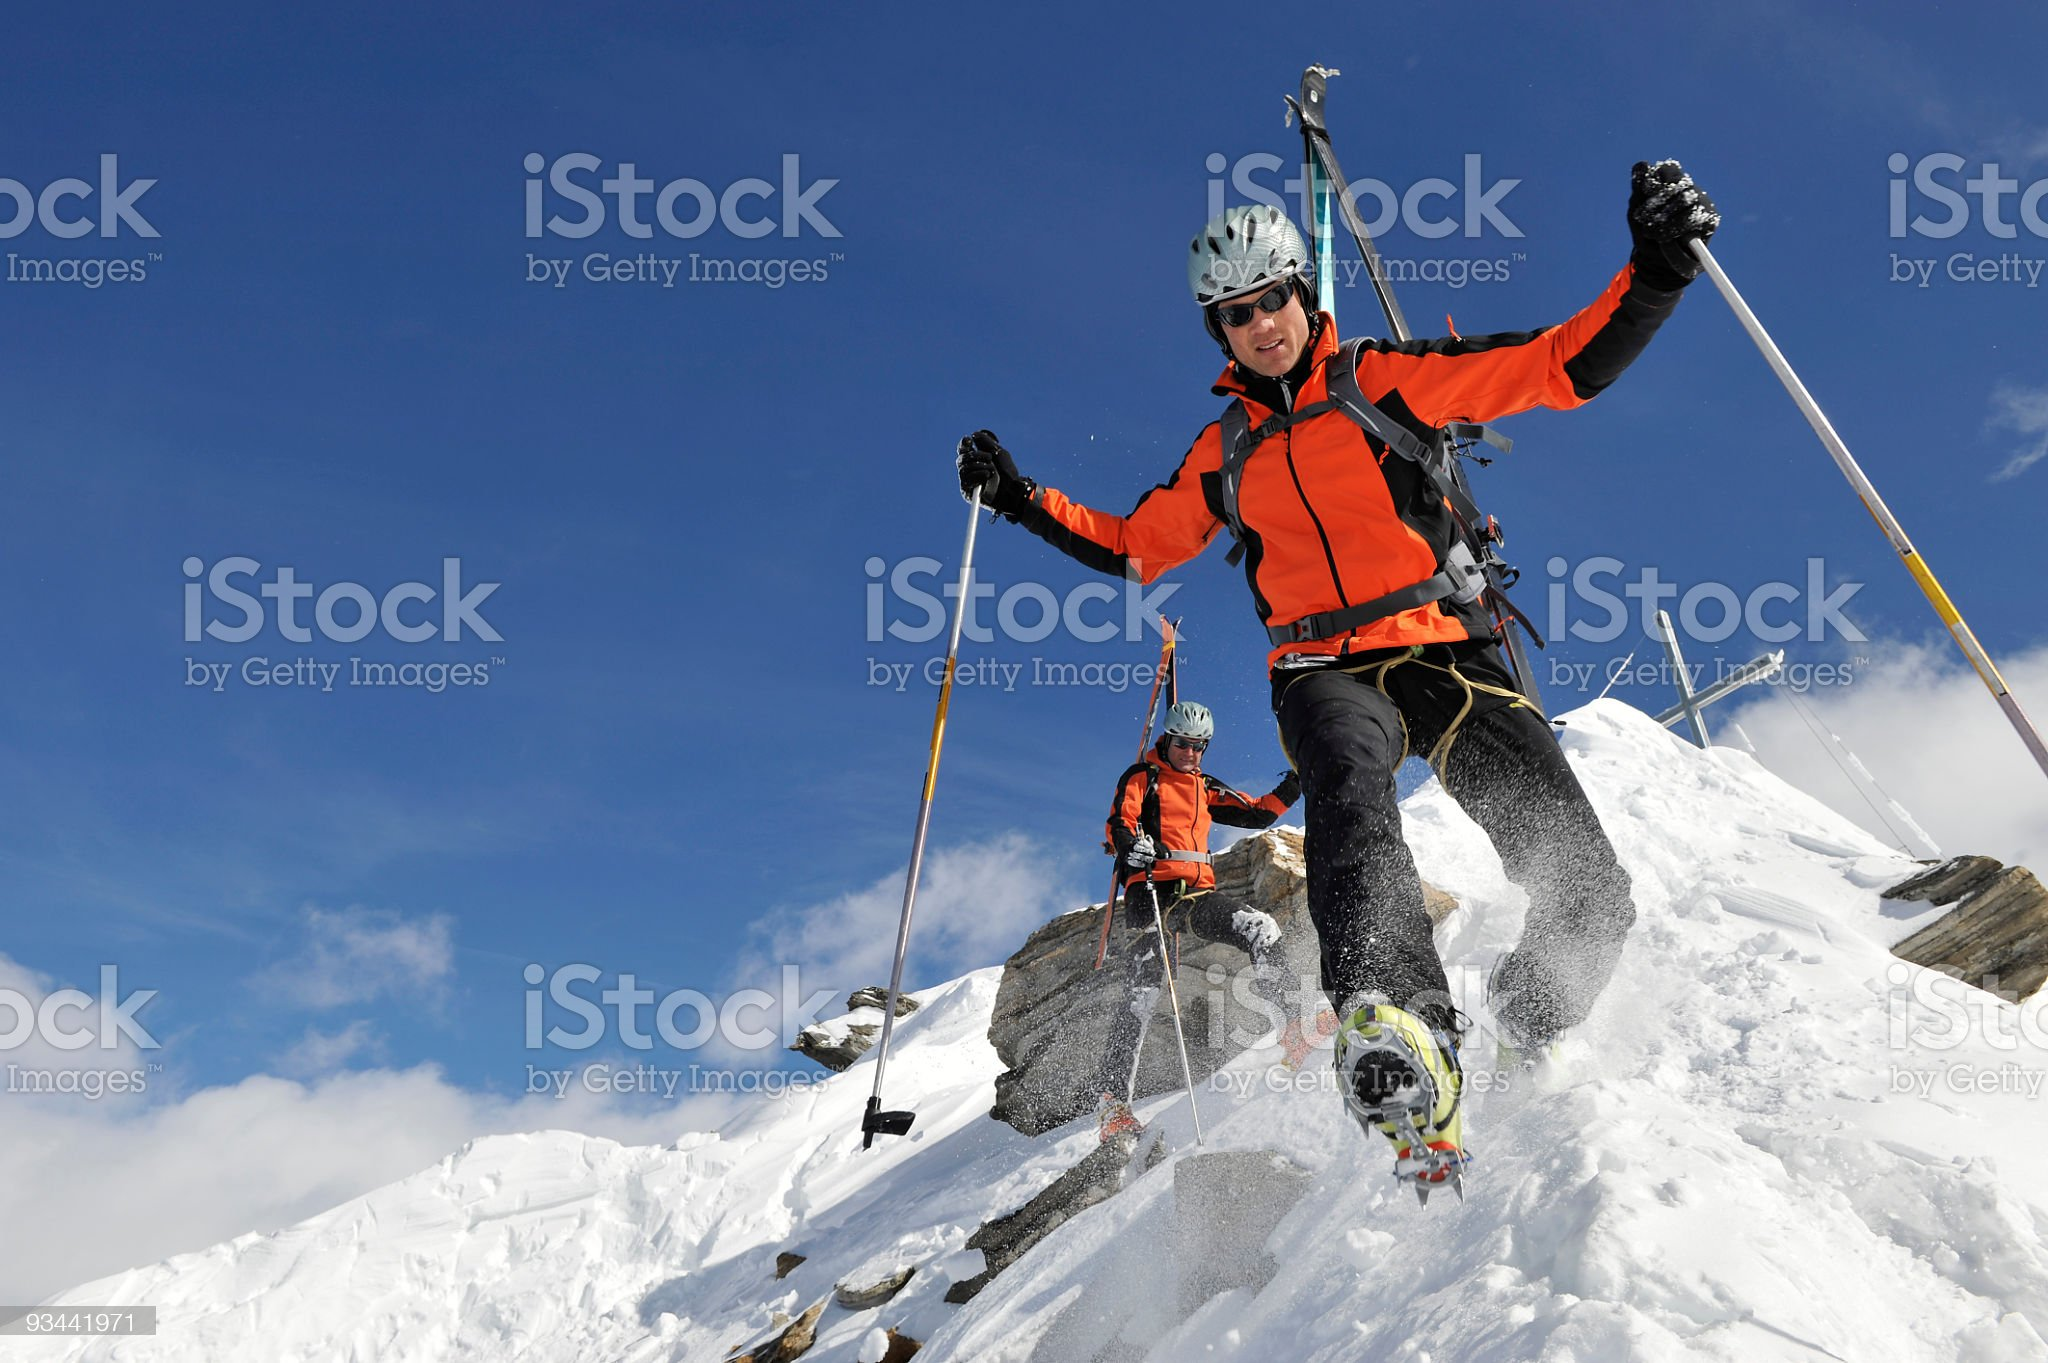 Bergsteiger in extremer Lage royalty-free stock photo